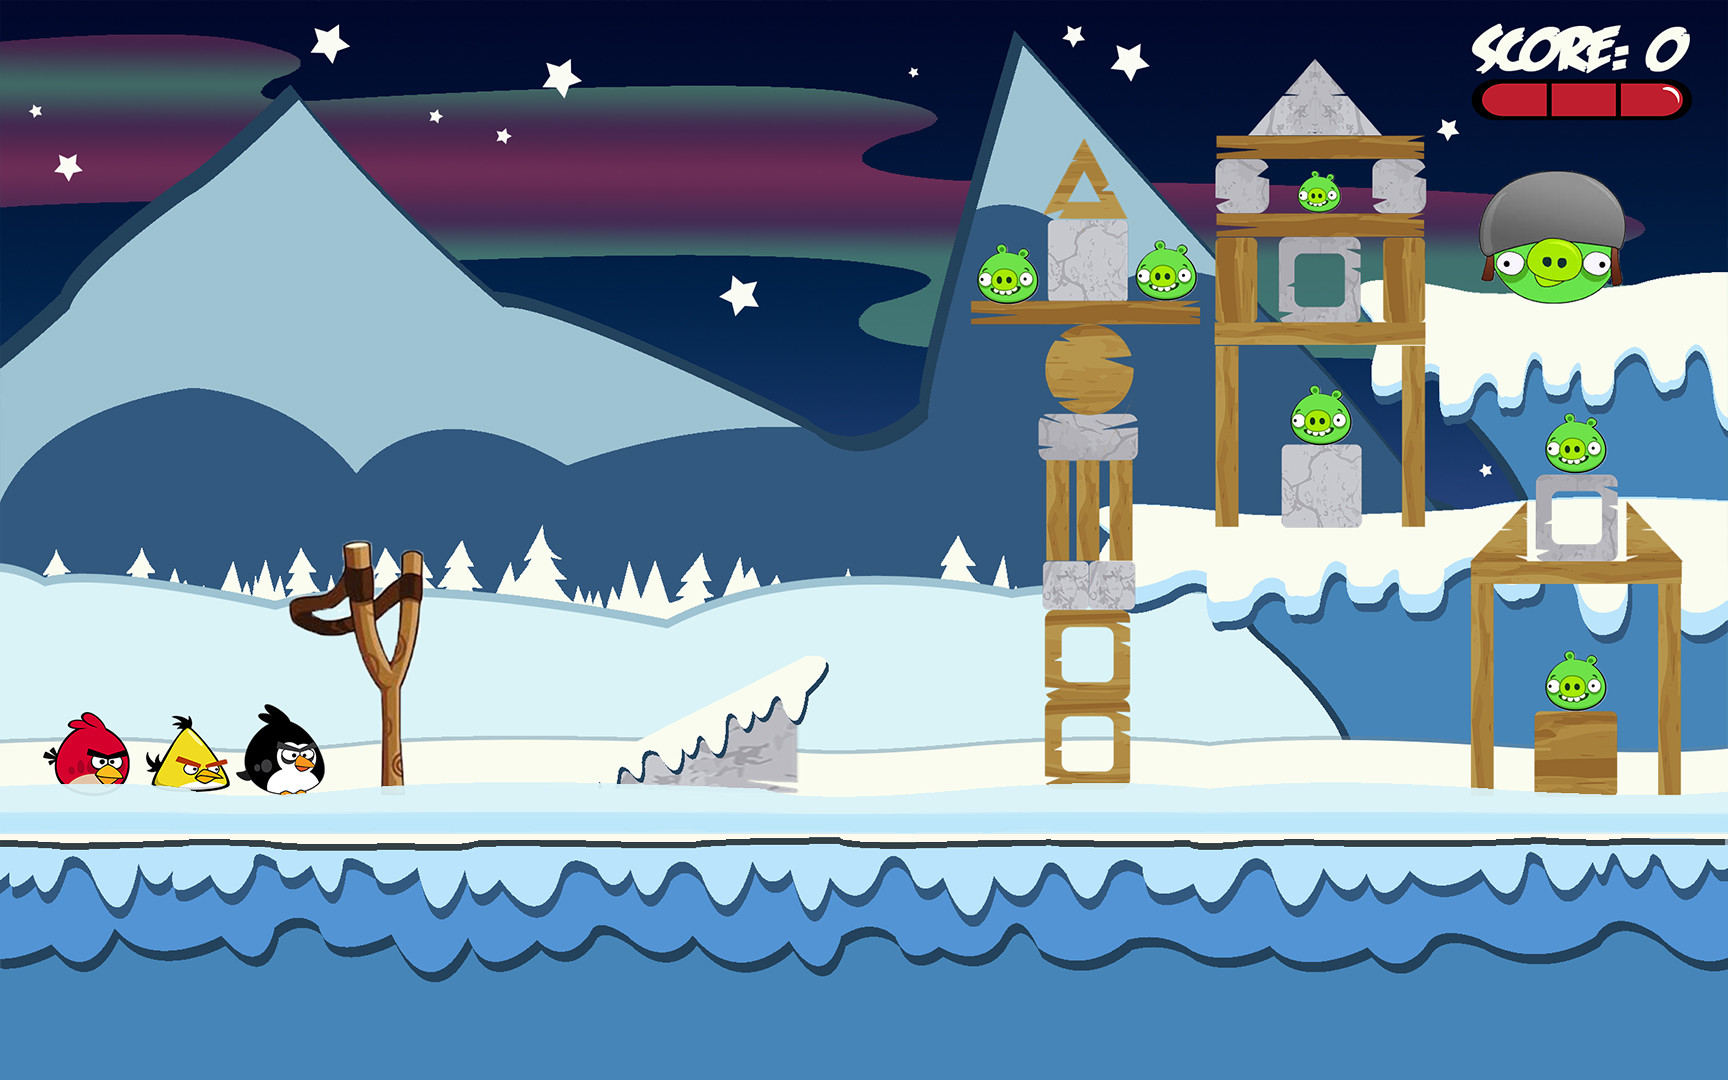 Jordan cameron angrybirds winterscene level4